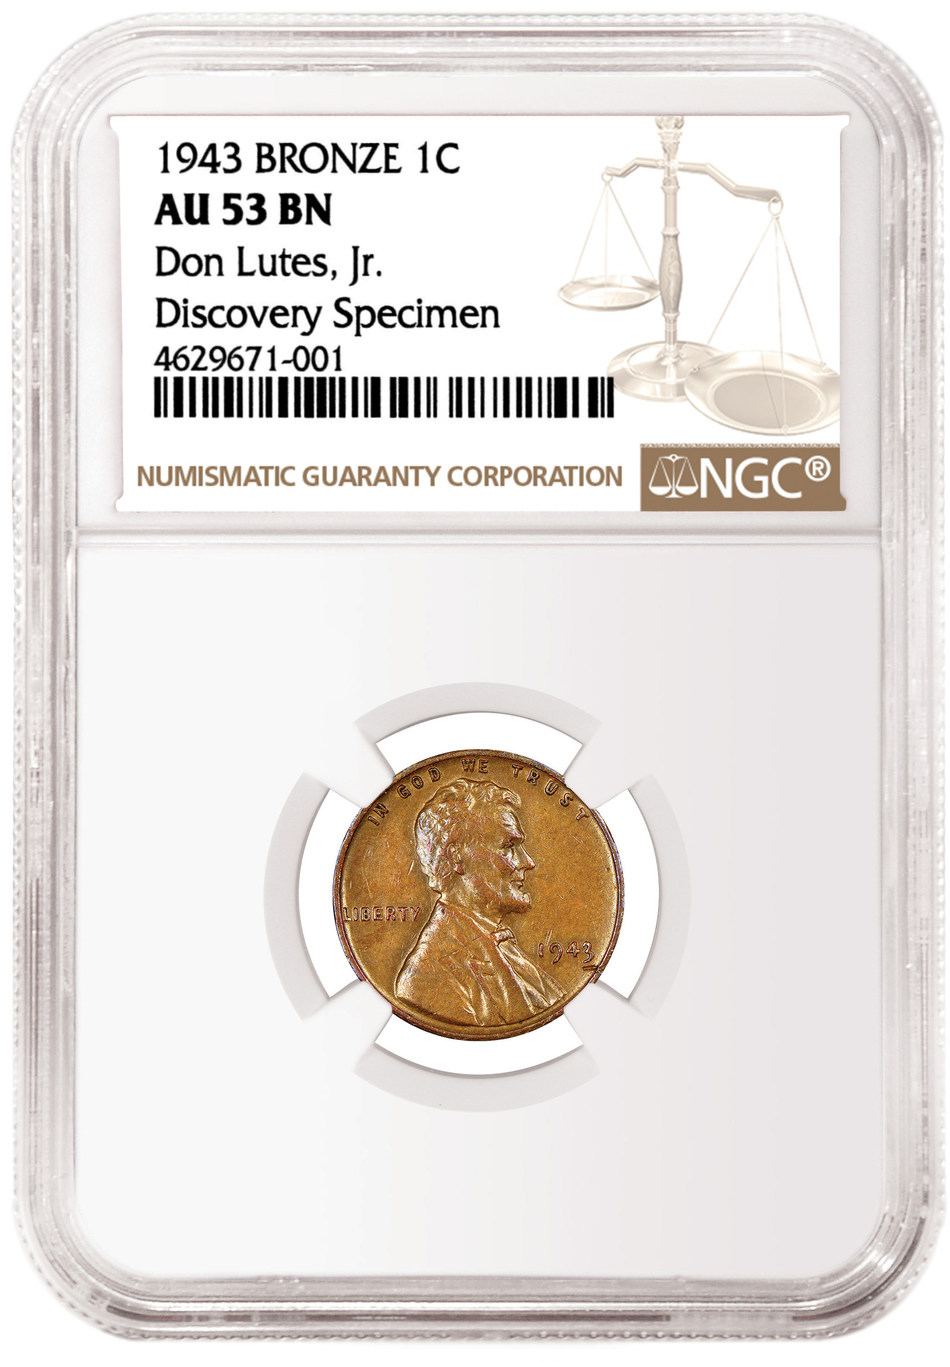 Obverse of the 1943 Bronze Cent, graded NGC AU 53 BN, and pedigreed as the Don Lutes, Jr. Discovery Specimen